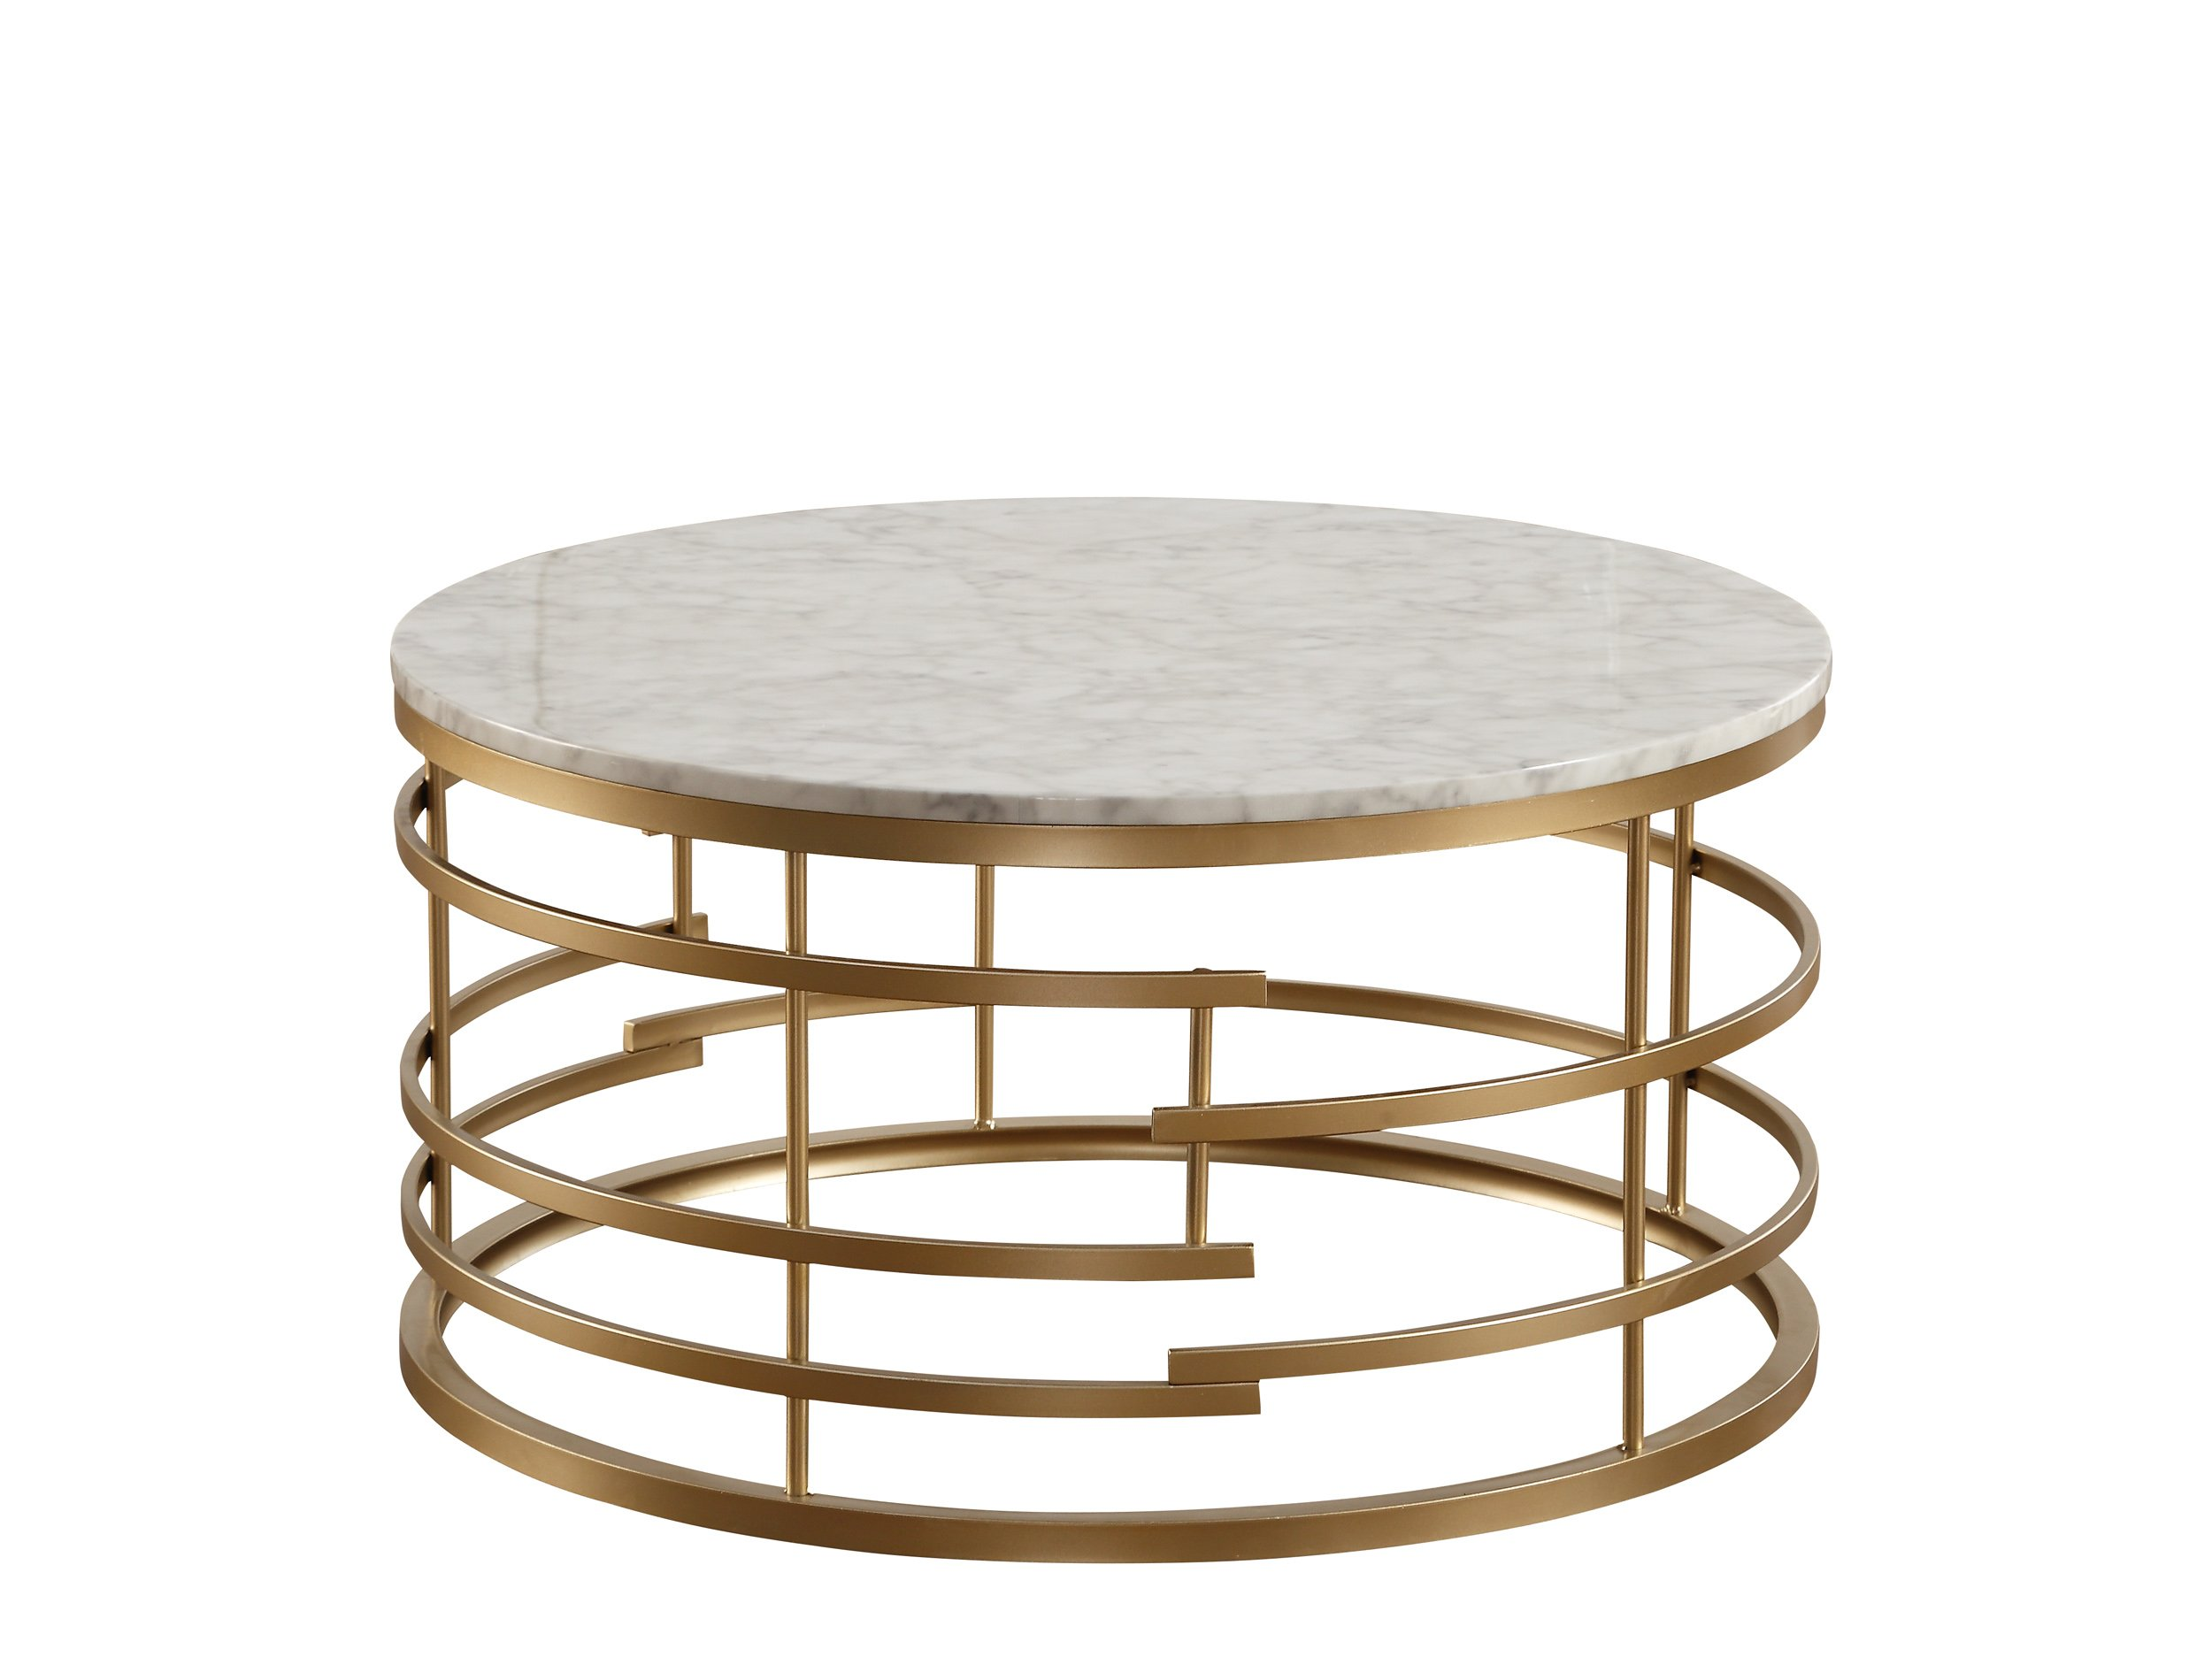 Homelegance Brassica 34'' Round Faux Marble Coffee Table, Gold by Homelegance